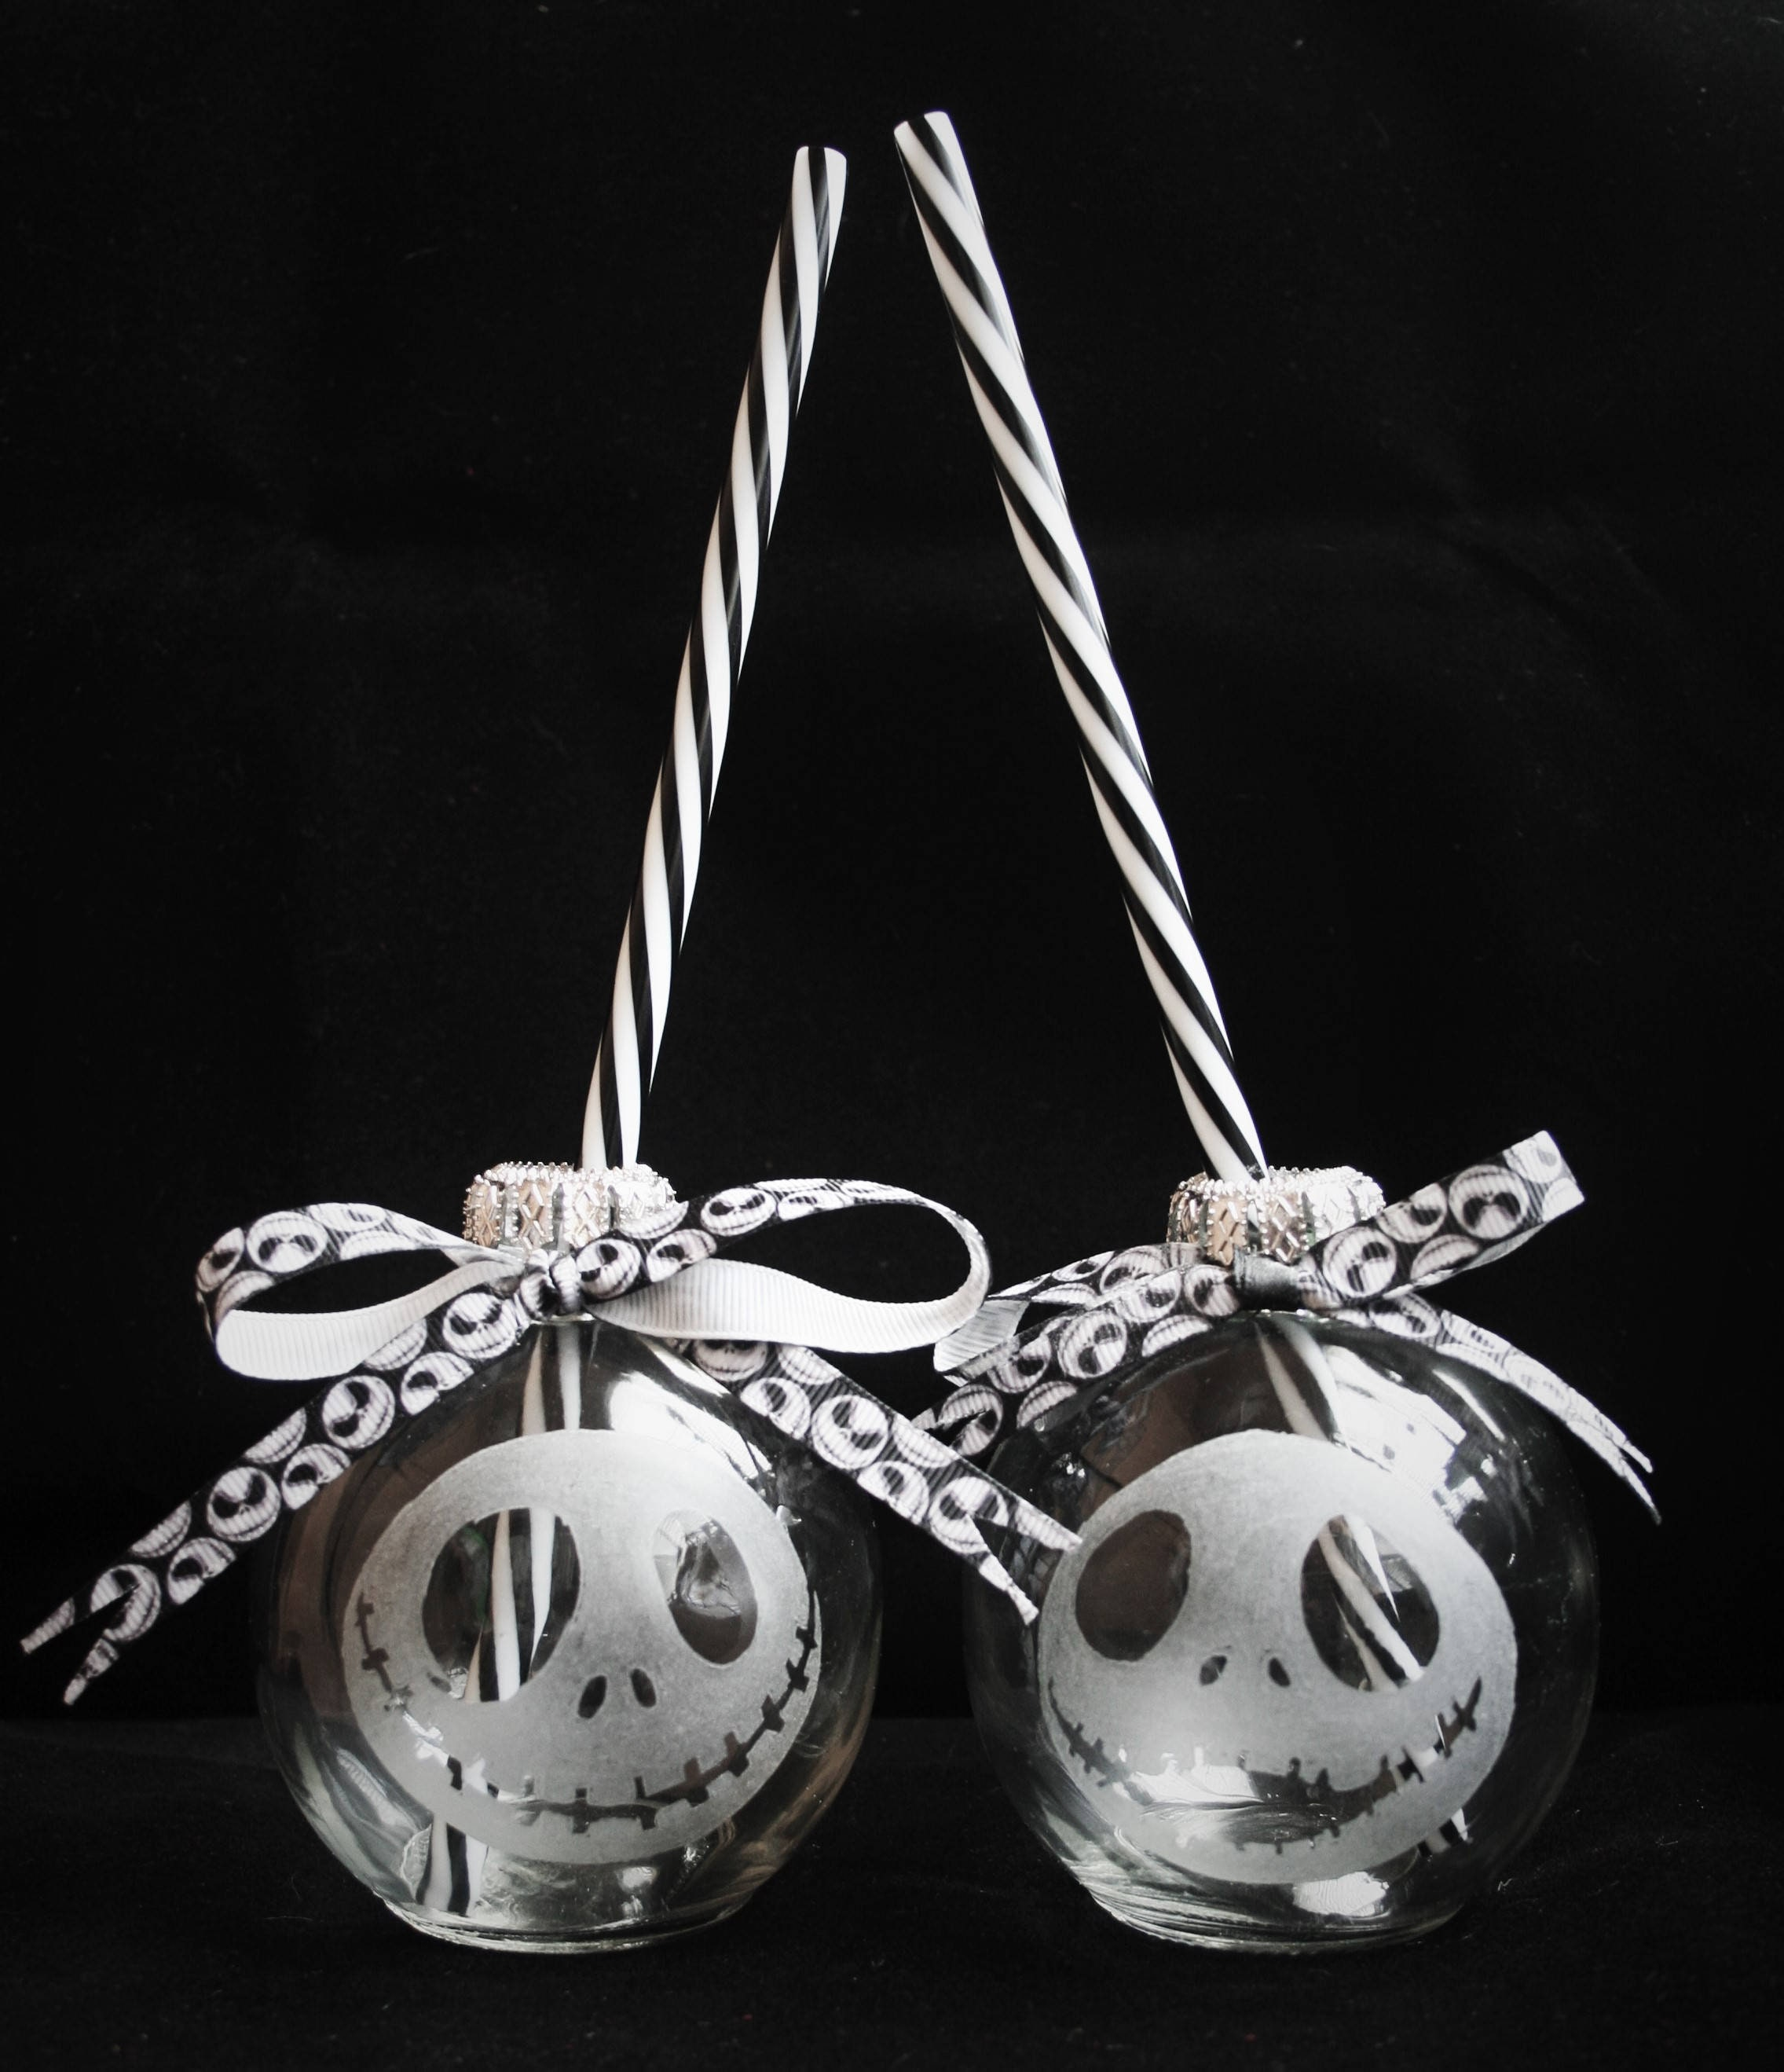 Nightmare Before Christmas Gifts Uk: Nightmare Before Christmas Glass Drinking Bauble Festive